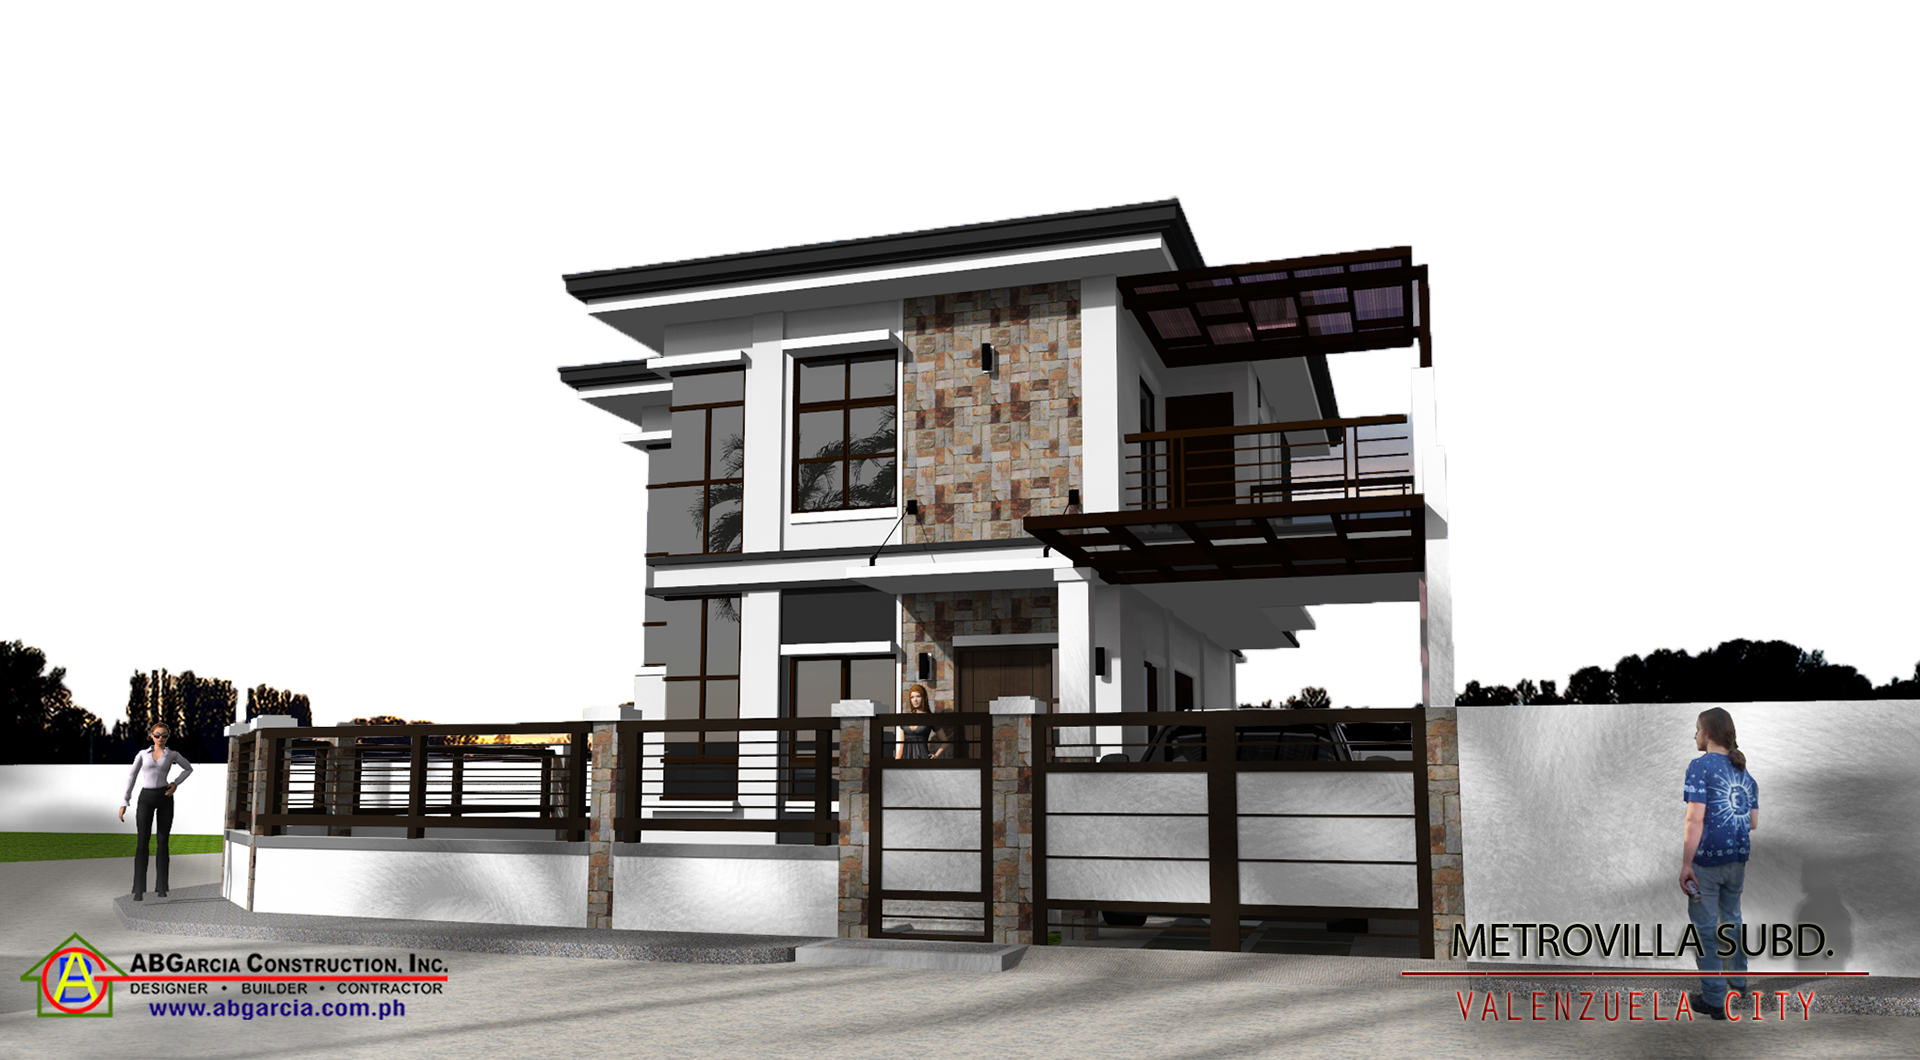 Ab garcia construction inc designer builder for Design house inc